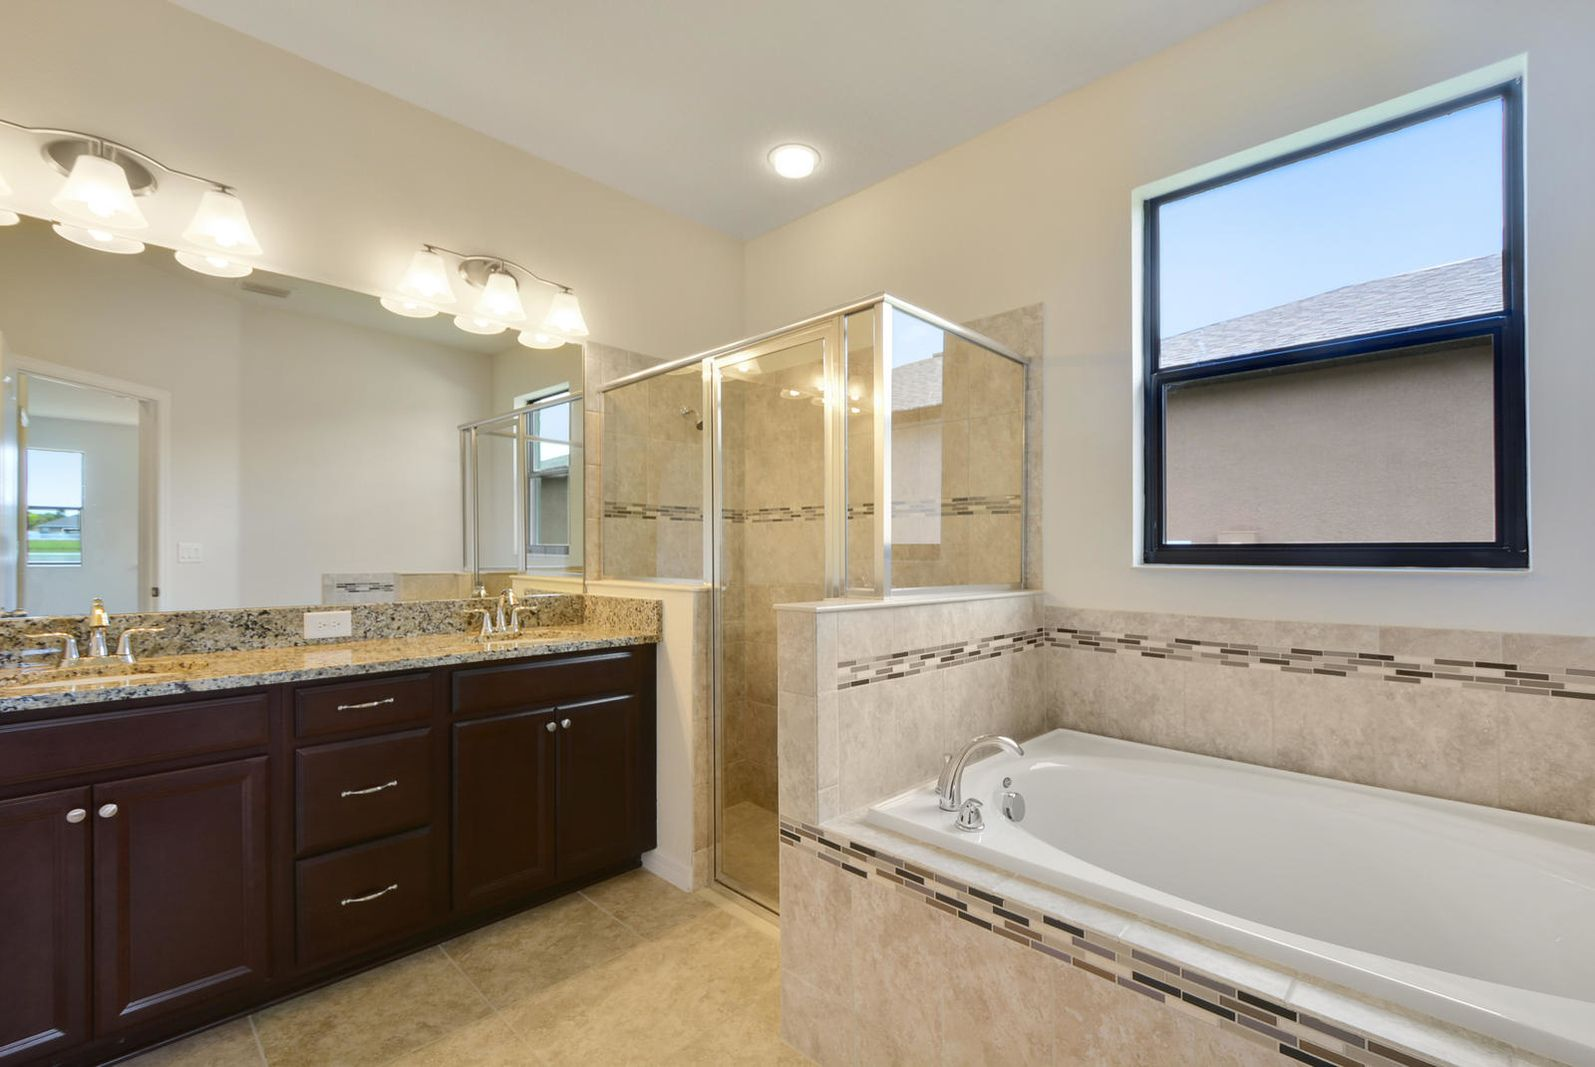 Bathroom-in-Jasmine Cove-at-Victoria Trails-in-Deland